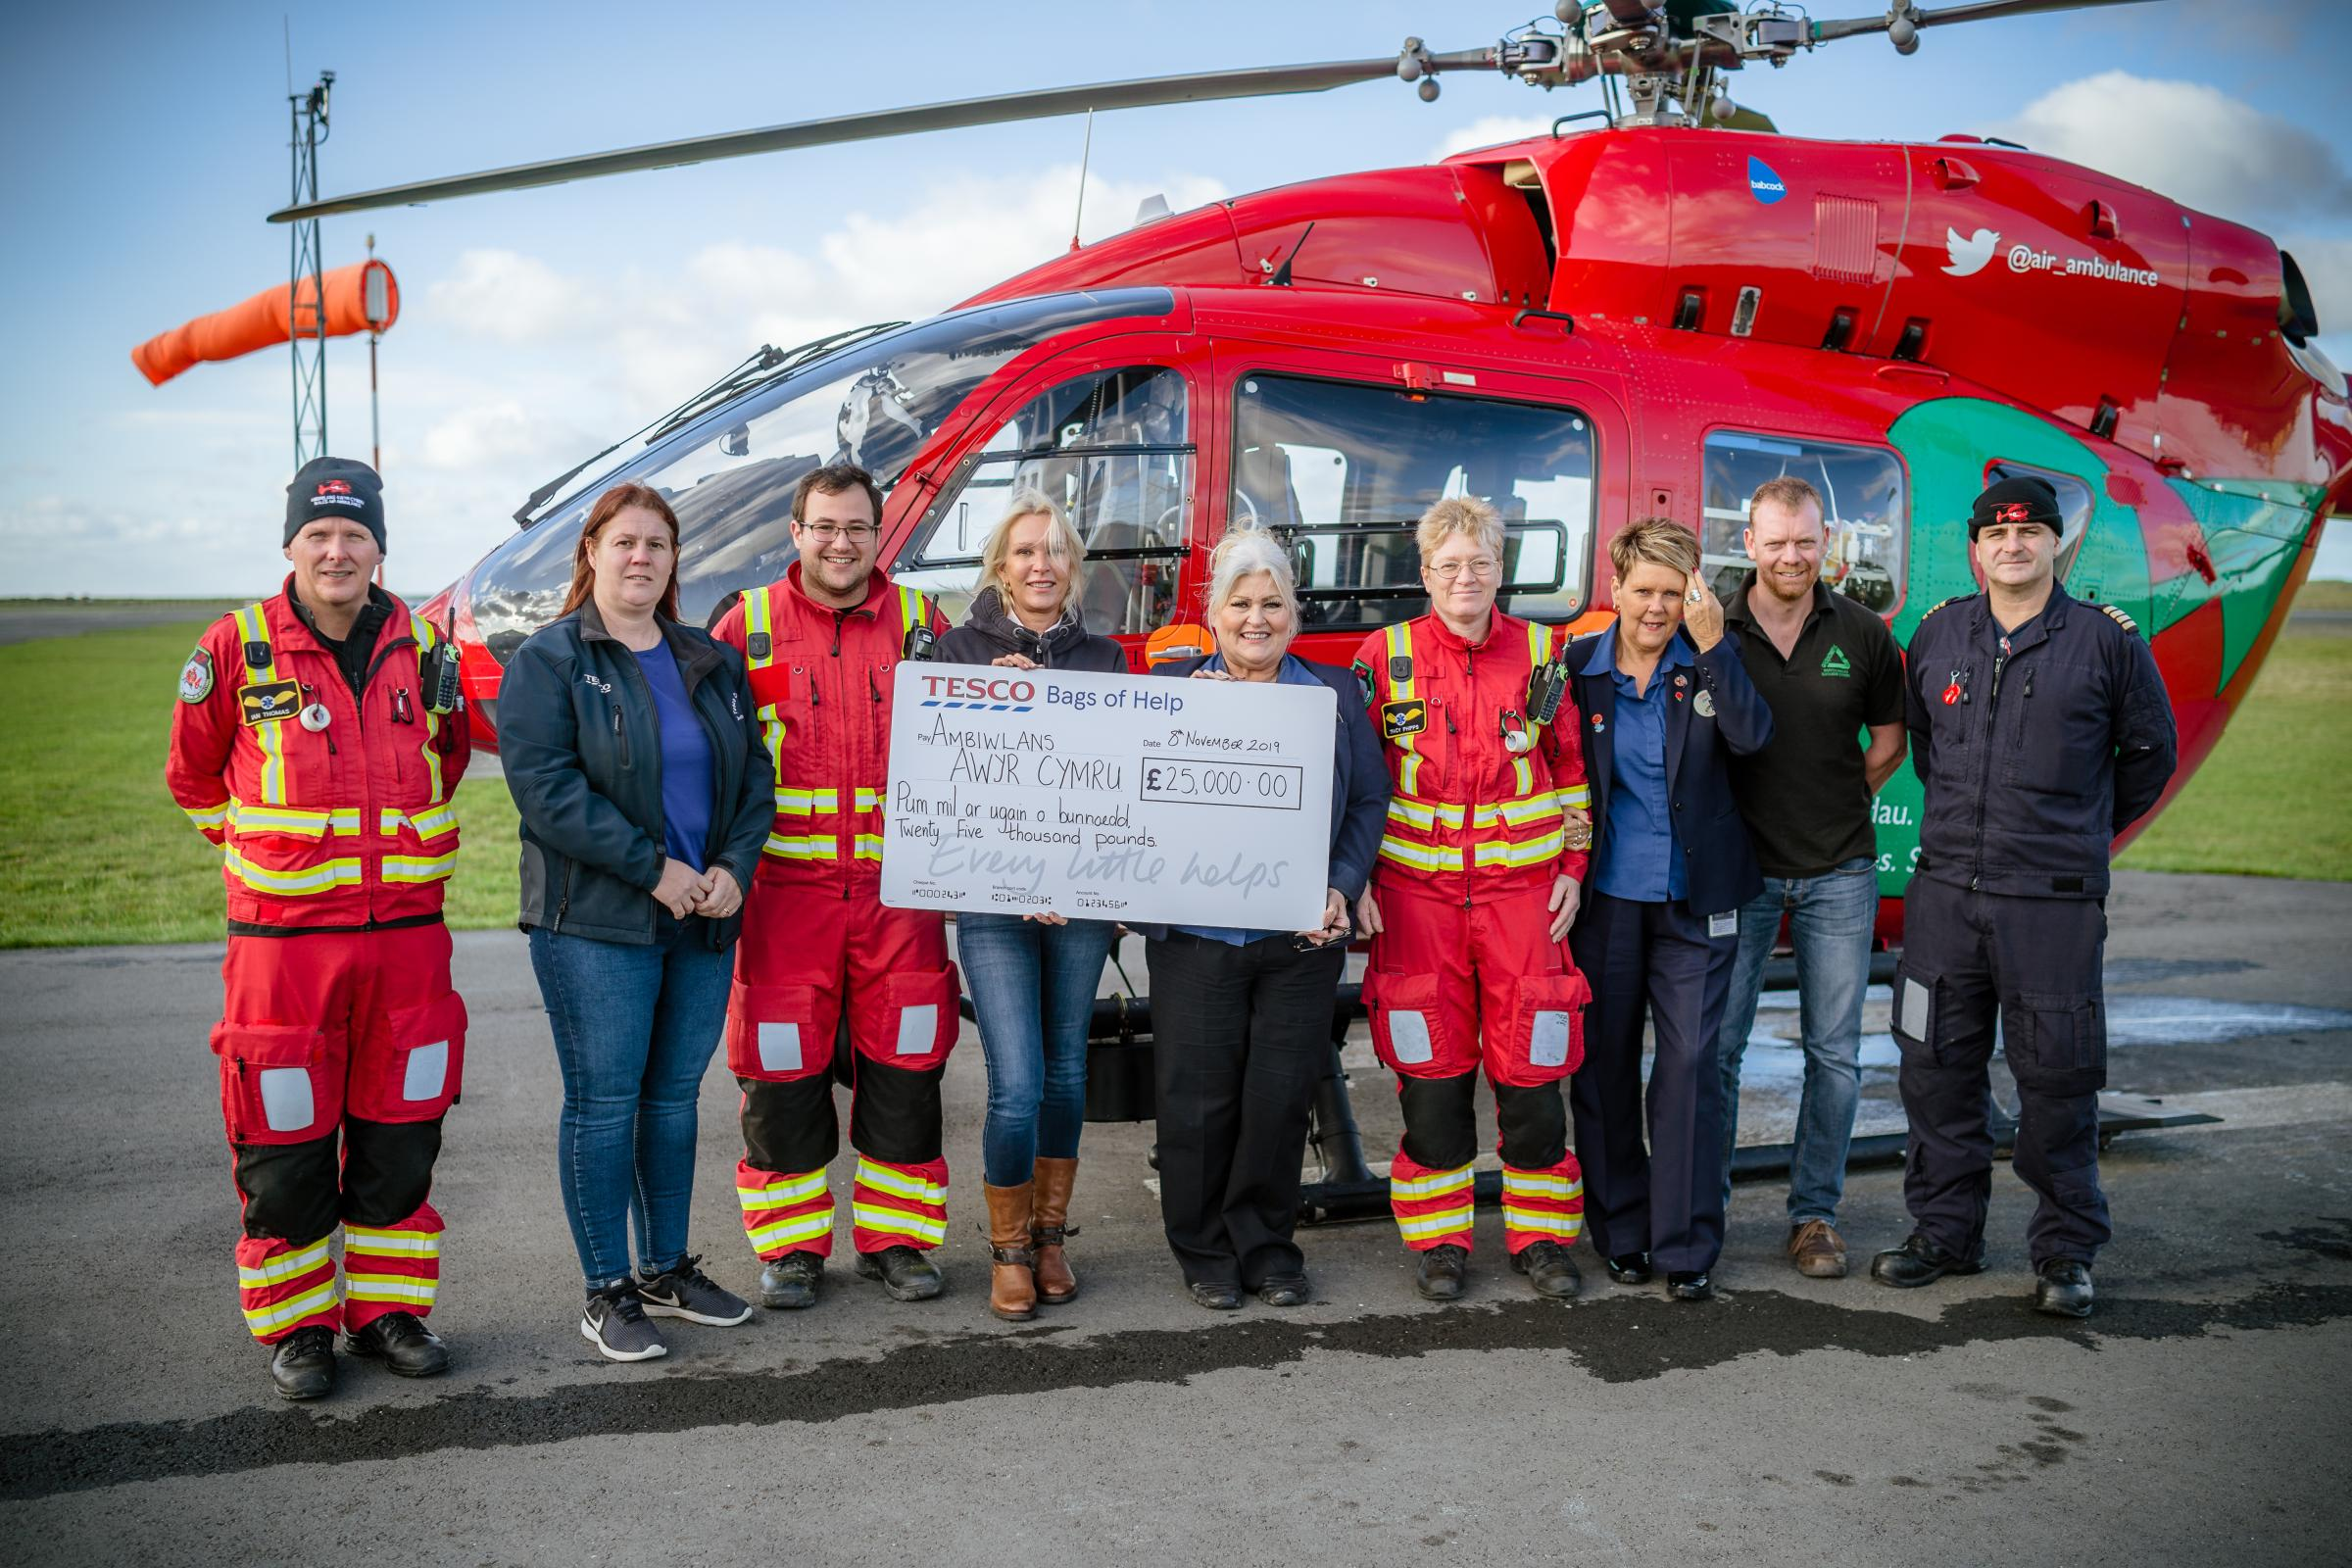 Wales Air Ambulance gets funding boost thanks to Tesco customers